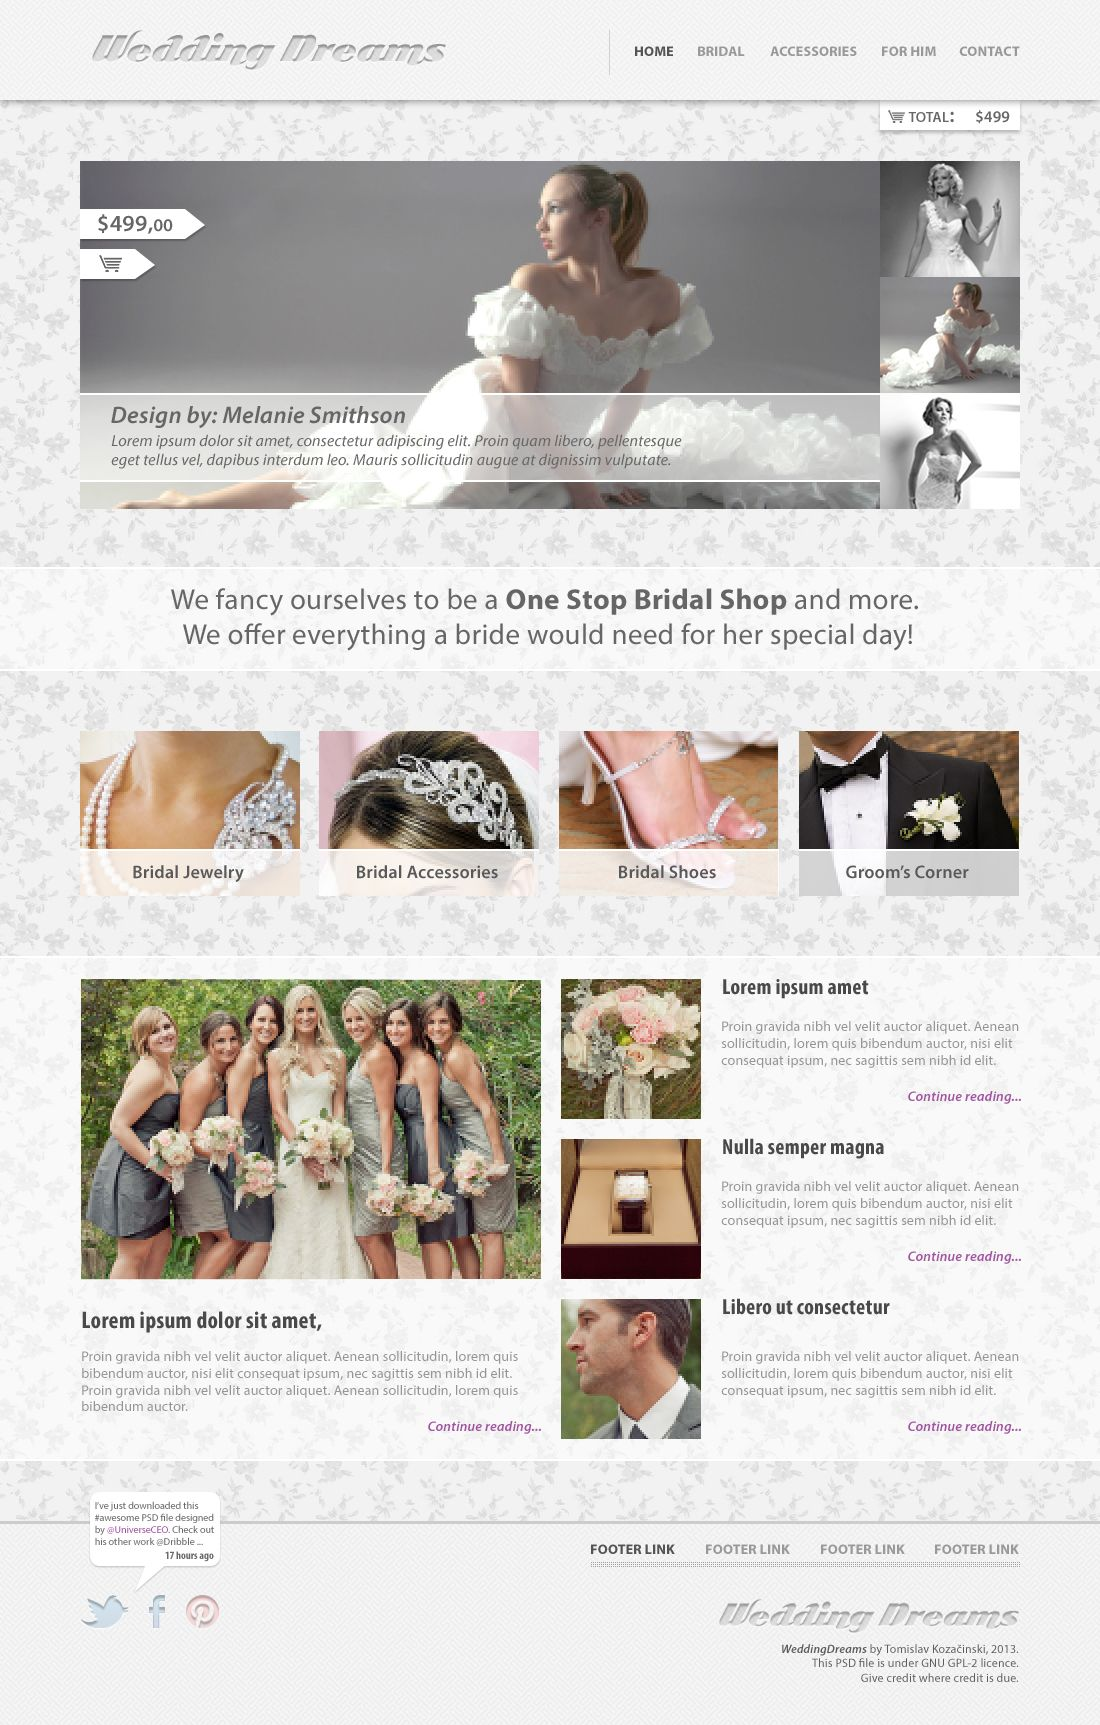 Wedding Dreams - Free PSD Template